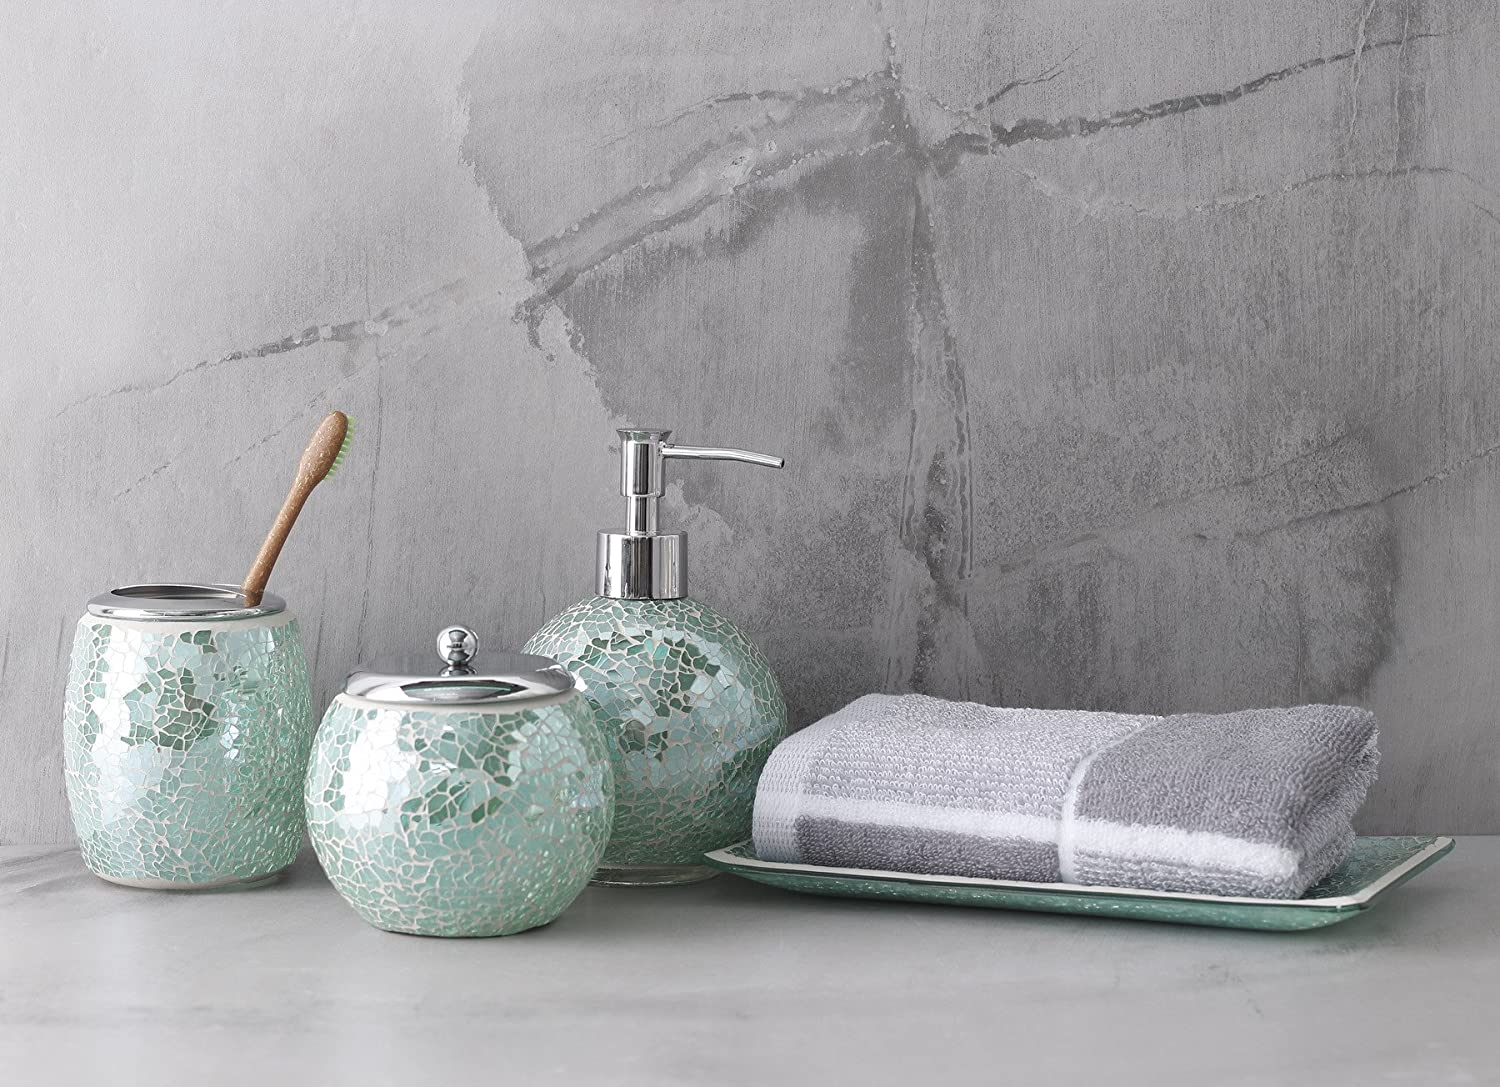 Paris Bathroom Accessory Set Includes Hand Soap Dispenser Toothbrush Holder Soap Dish Blue Donuts 4 Piece Bathroom Accessories Set Tumbler Grey